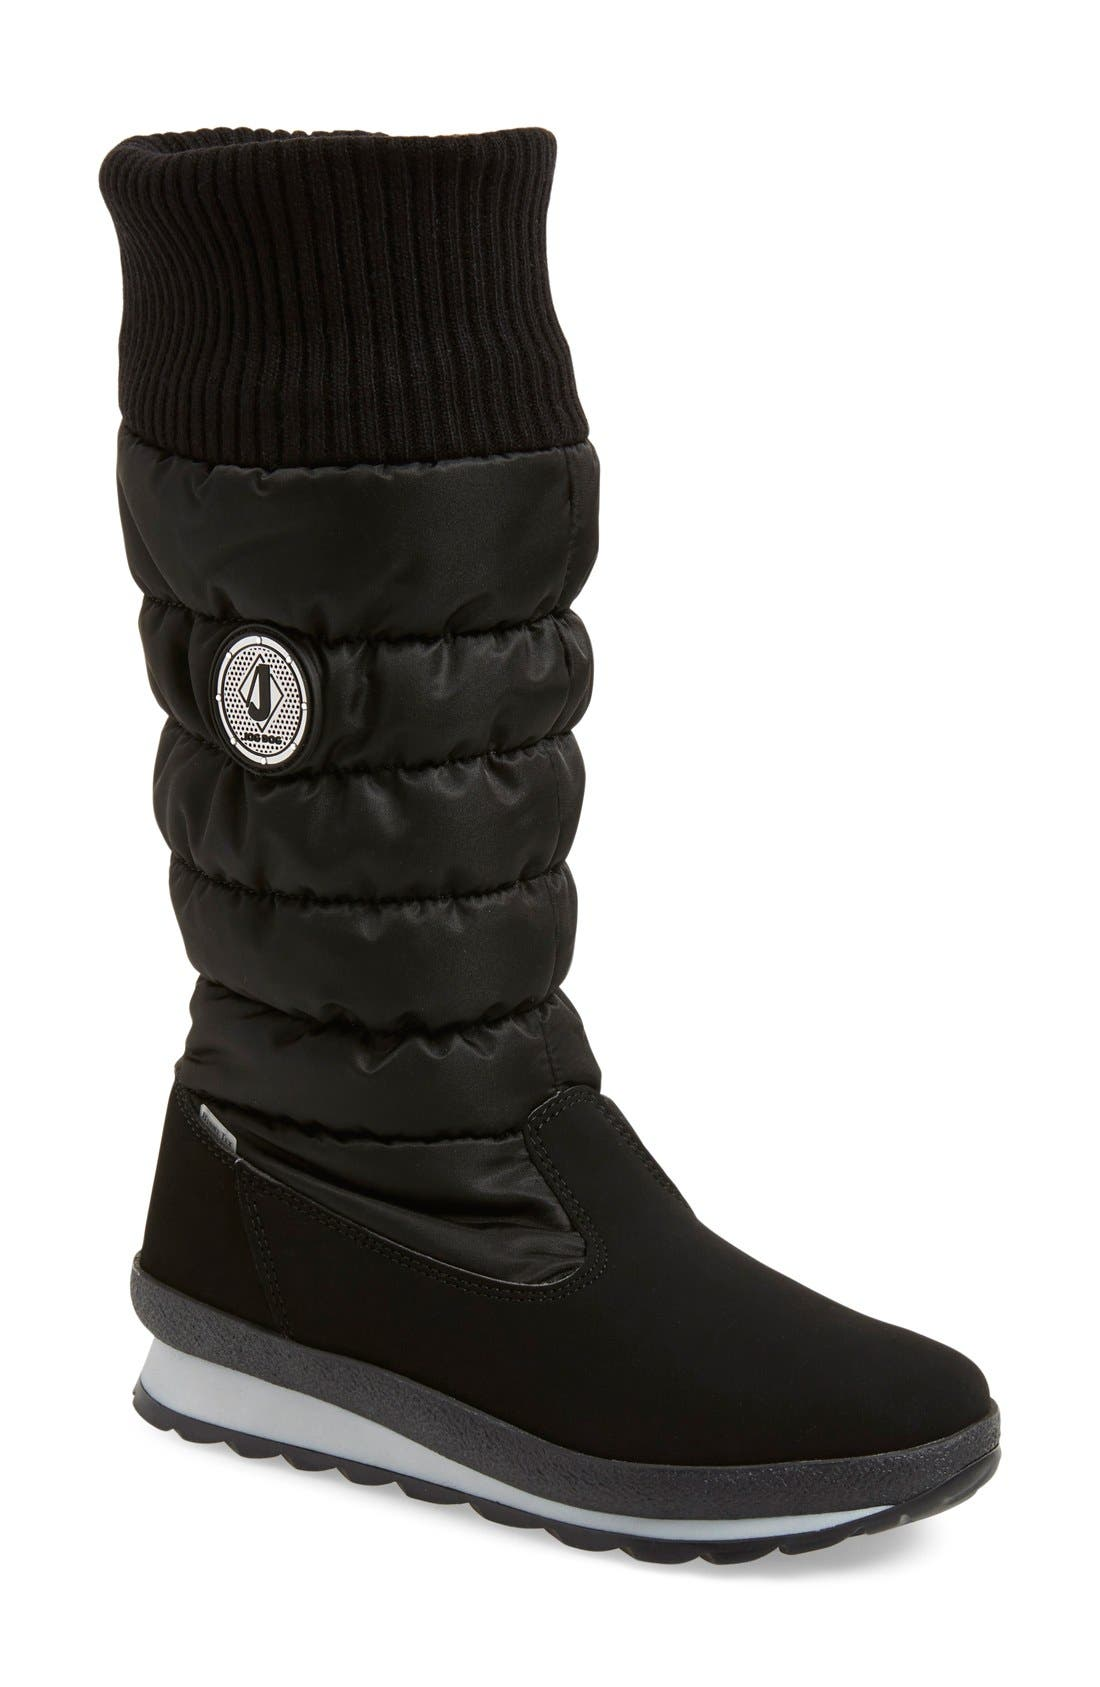 St. Anton Waterproof Winter Boot,                         Main,                         color, Black